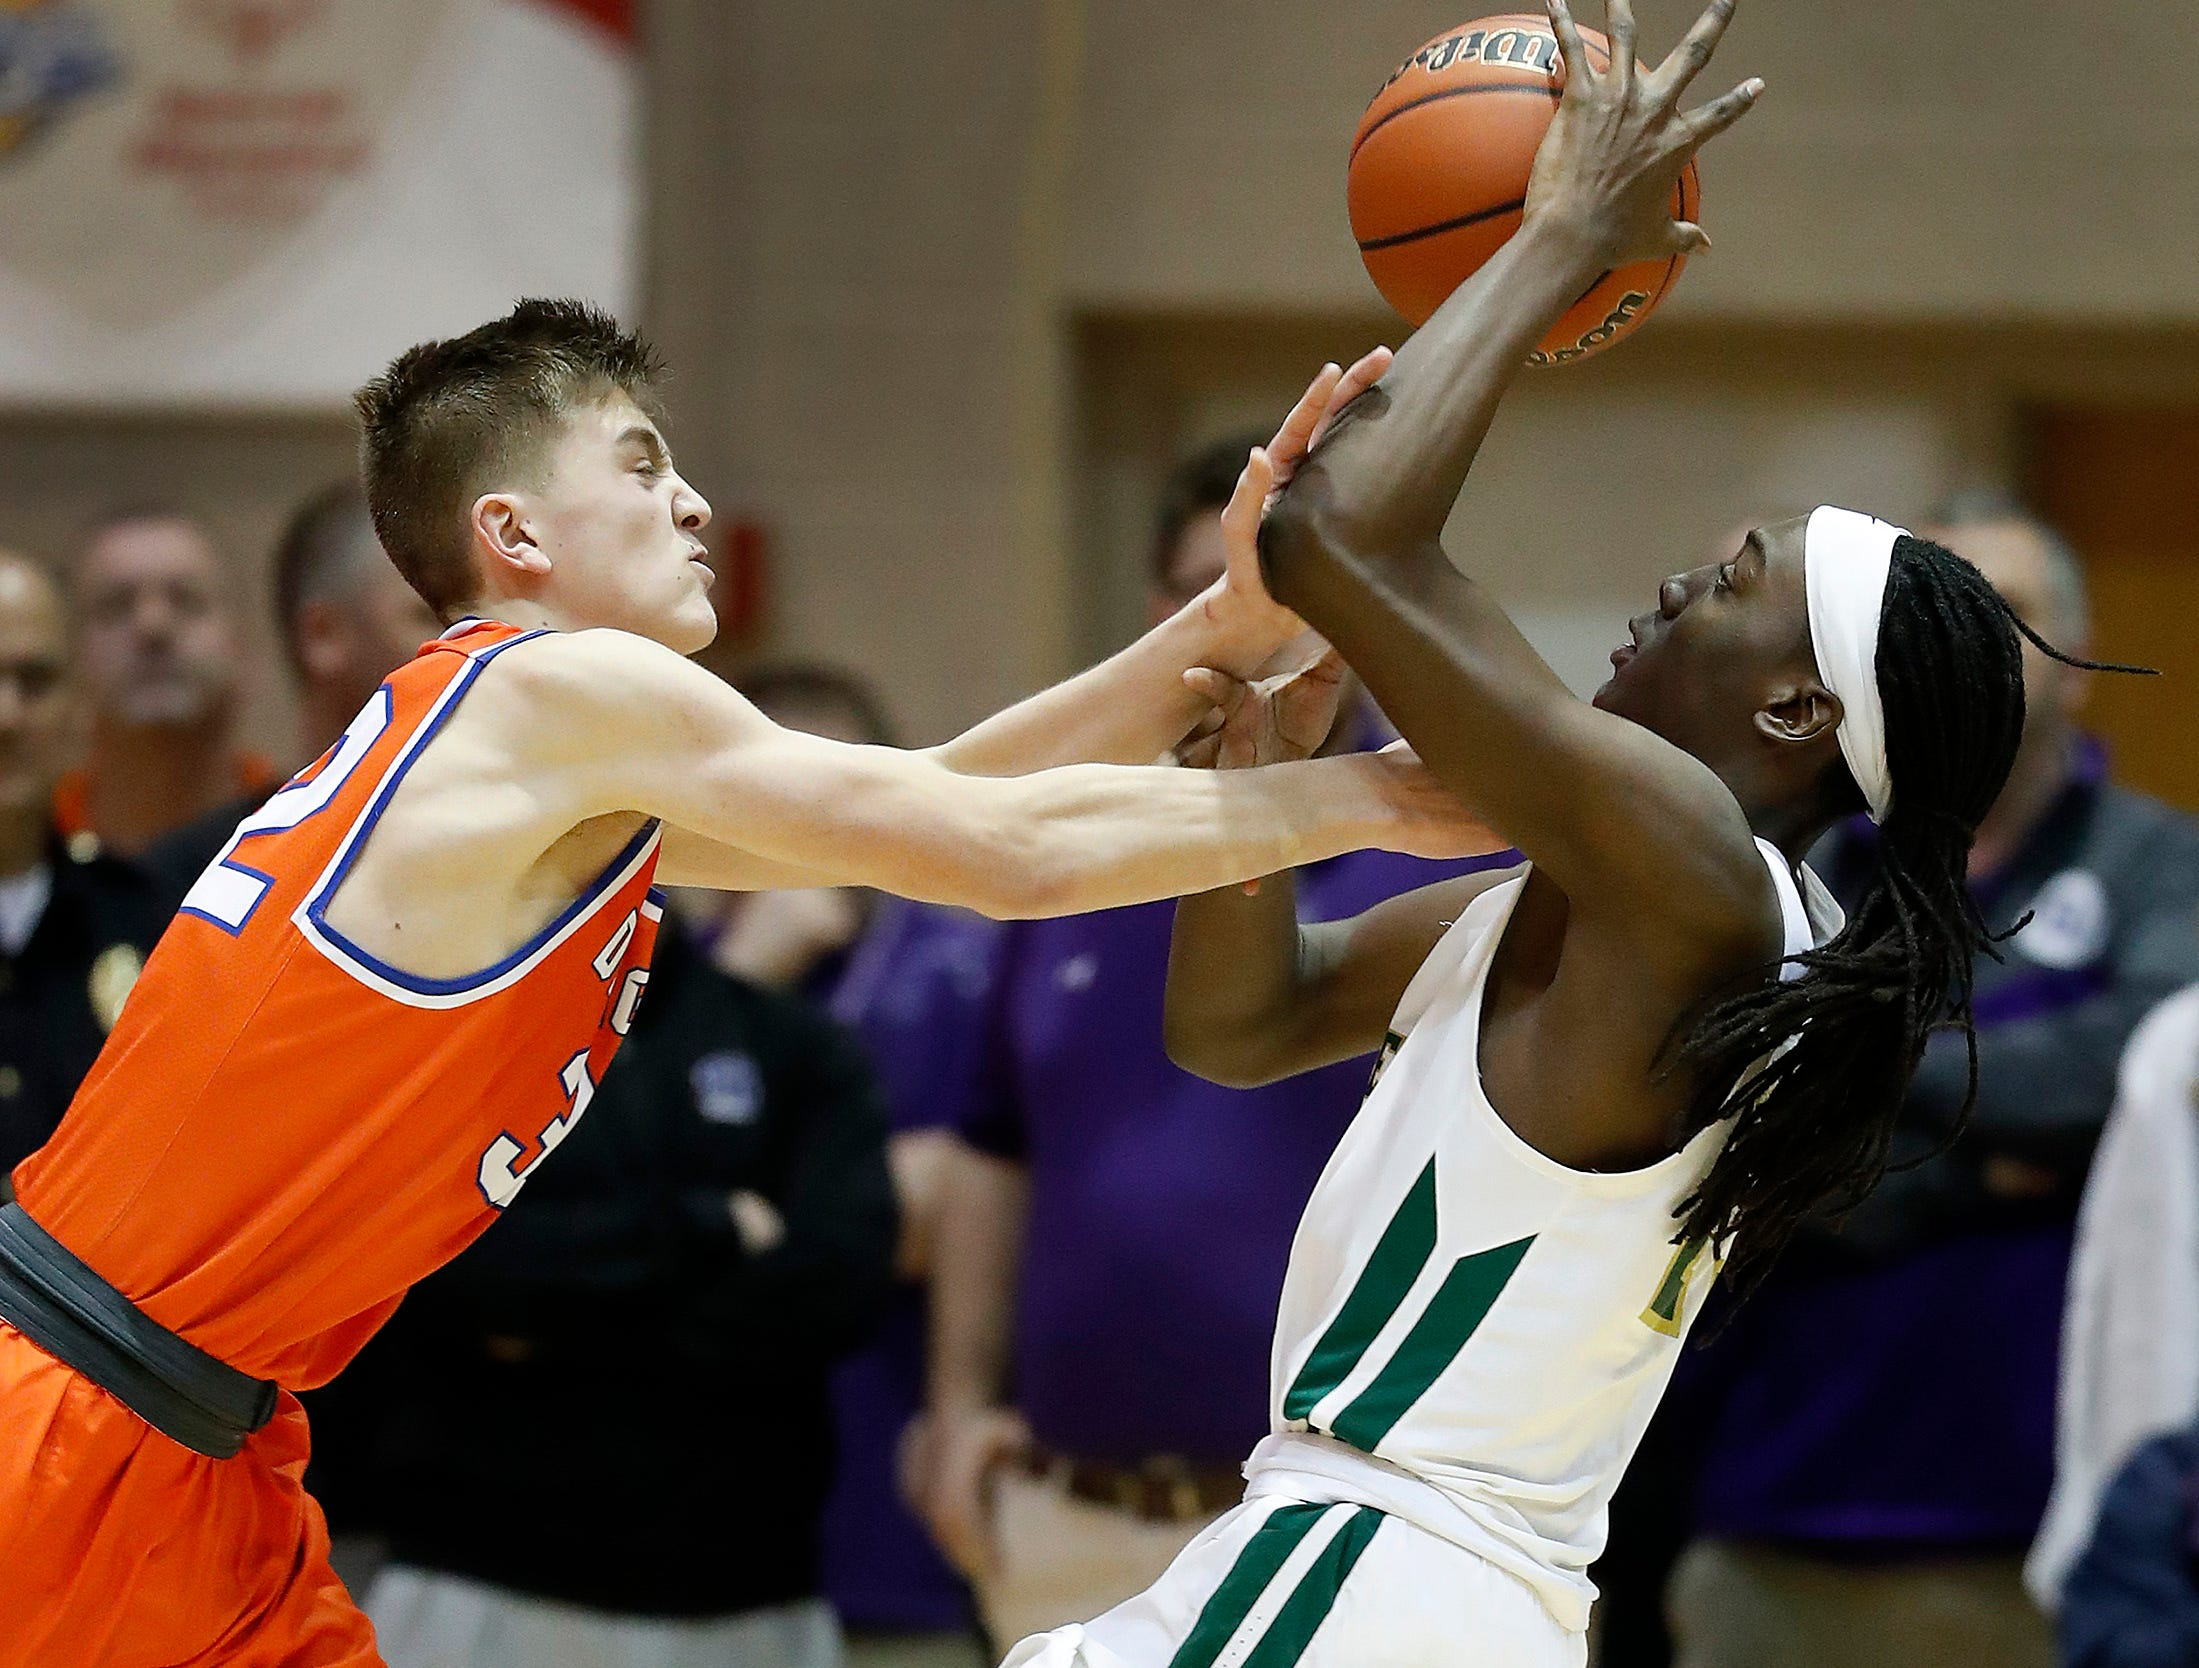 Crispus Attucks Tigers Jaiquan Edwards (23) is fouled by Silver Creek Dragons Kooper Jacobi (32) in the second half of their IHSAA boys' Semi-State basketball game at Seymour High School gym in Seymour IN, on Saturday, Mar. 16, 2019. The Silver Creek Dragons defeated the Crispus Attucks Tigers 72-69.